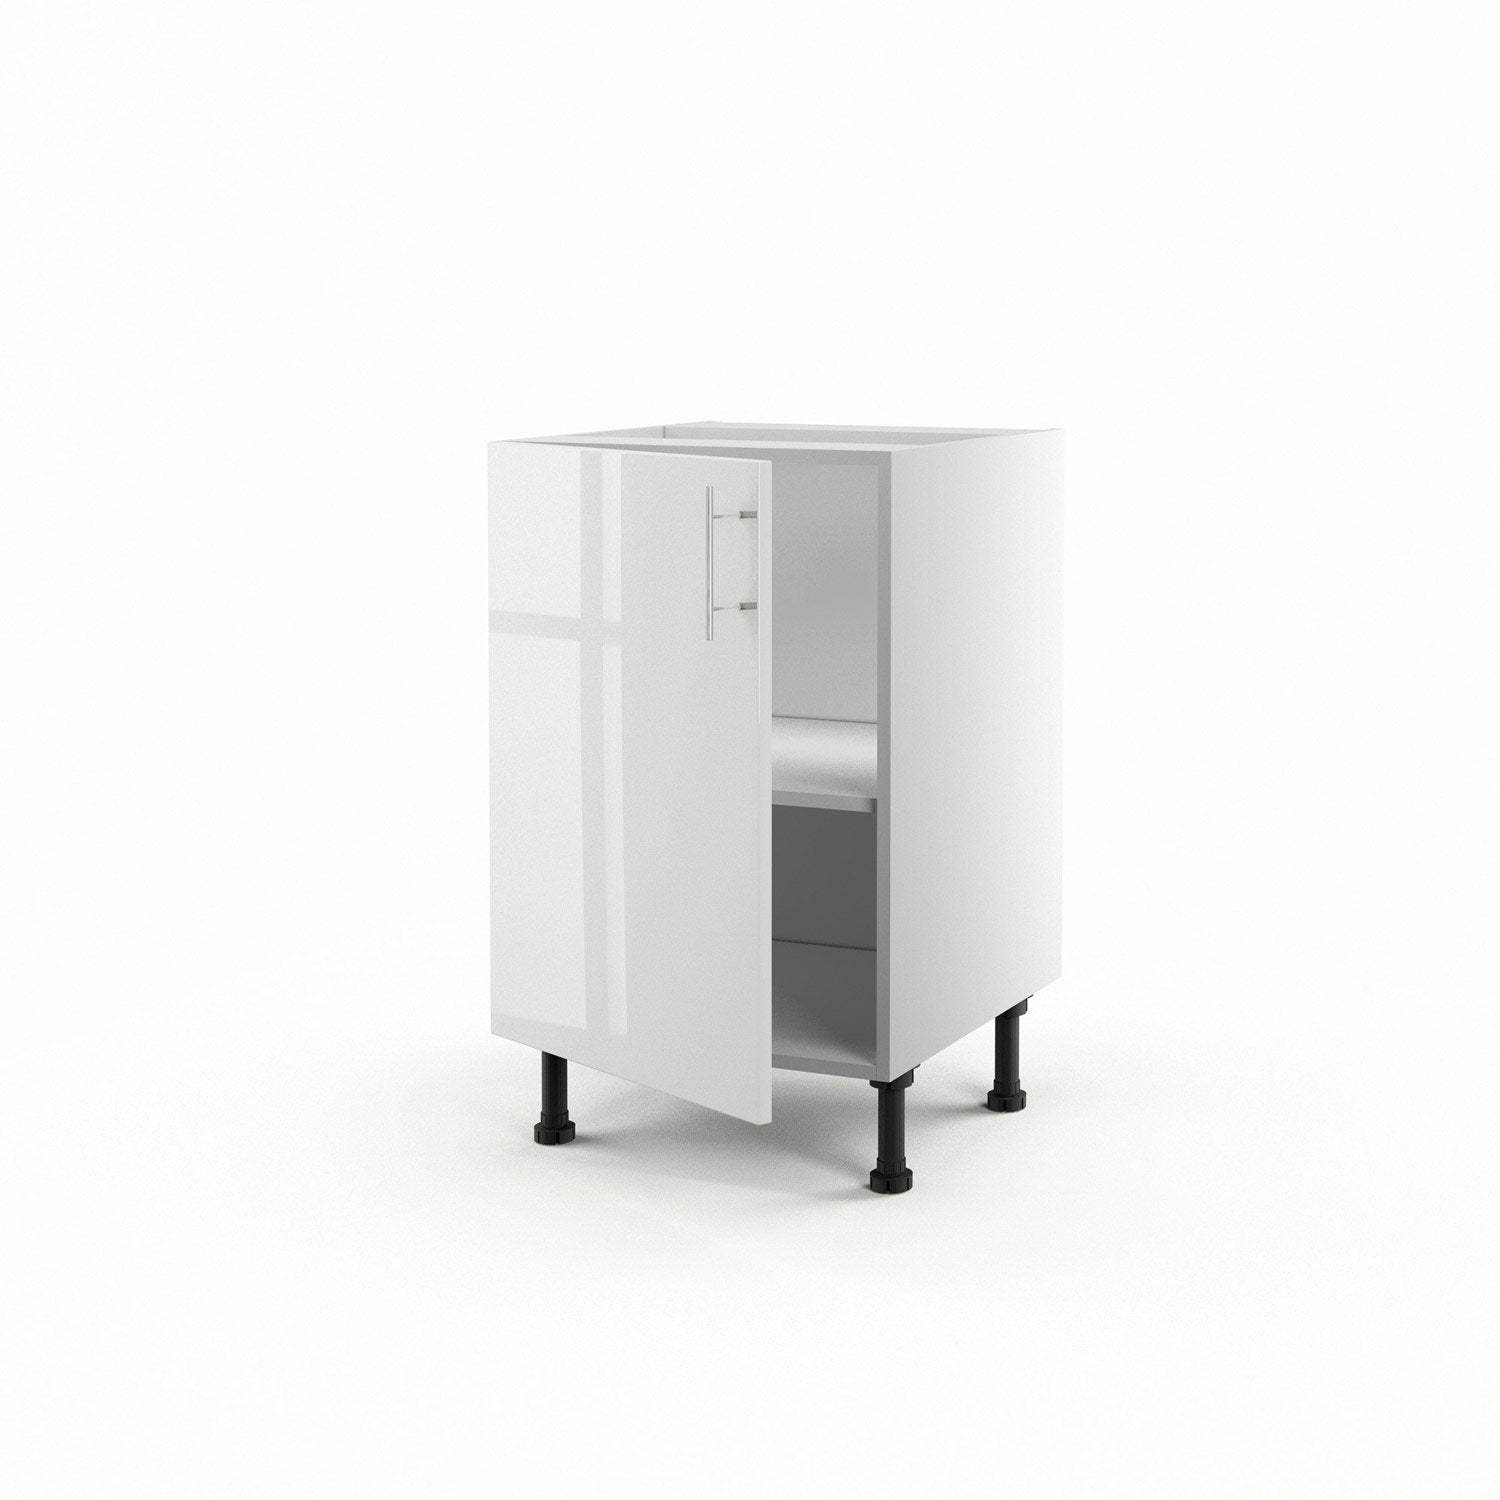 meuble de cuisine bas blanc 1 porte rio h70xl50xp56 cm leroy merlin. Black Bedroom Furniture Sets. Home Design Ideas